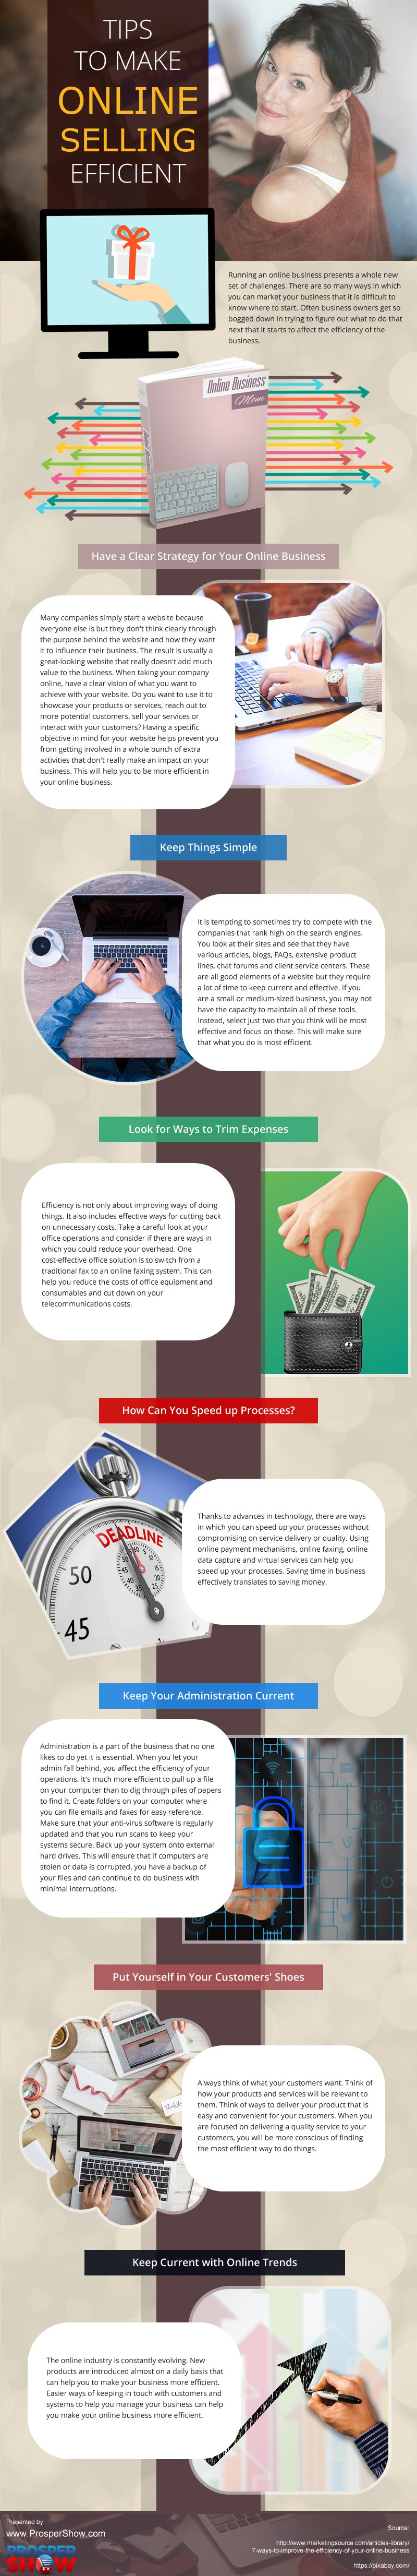 Tips-to-Make-Online-Selling-Efficient Infographic